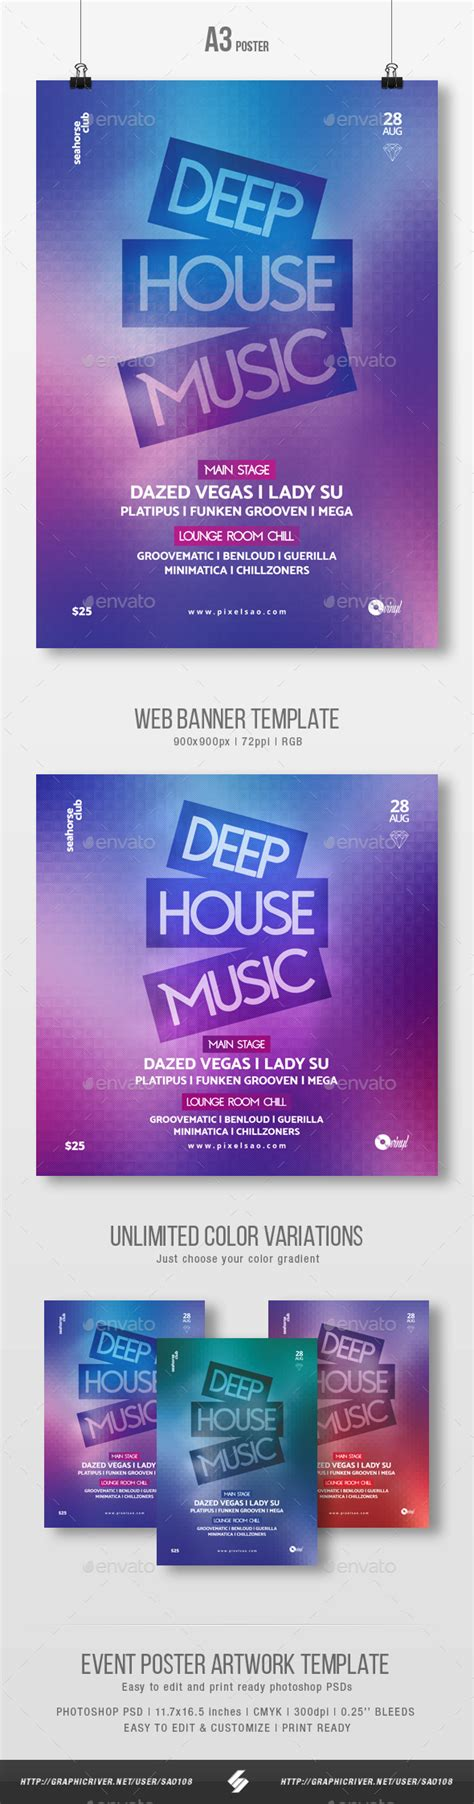 house music download sites download deep house music party flyer poster template a3 for free nullz gfx video